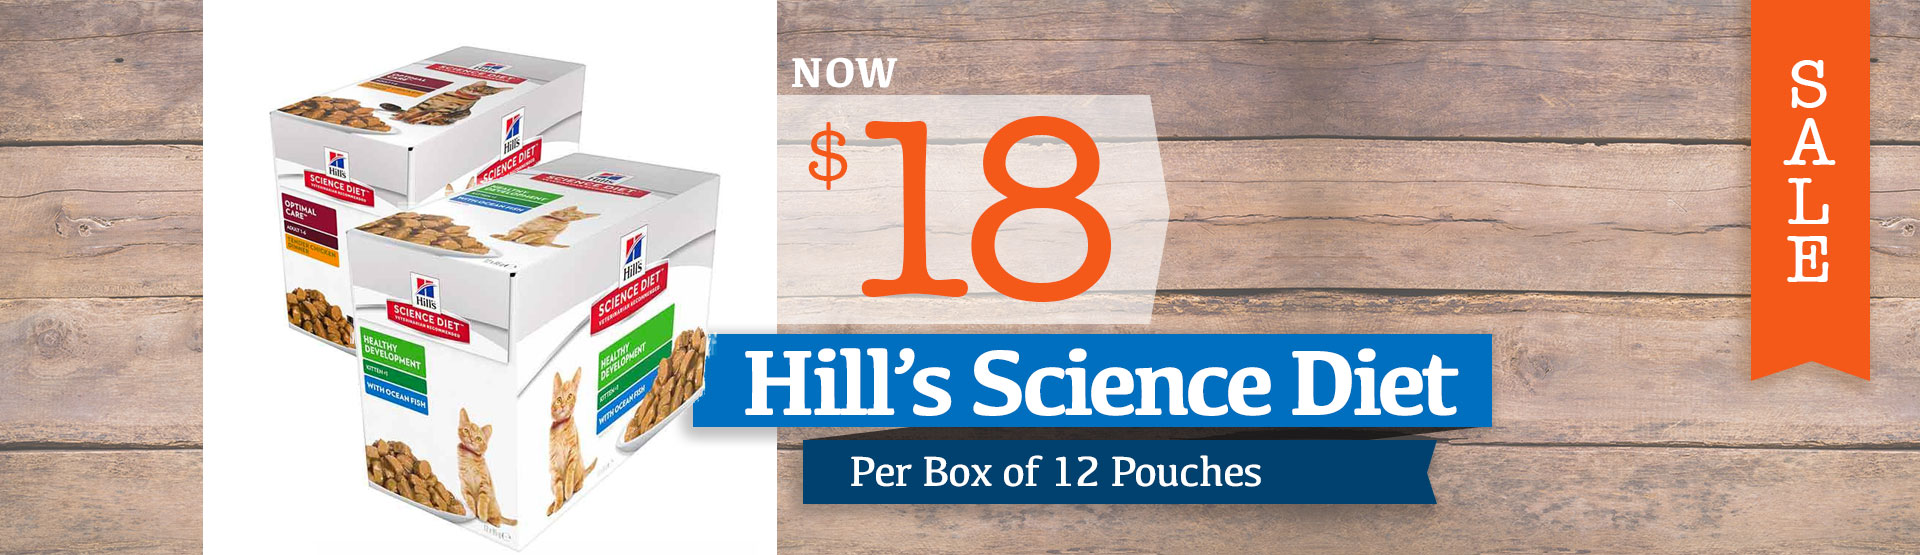 Hills Science Diet Box of 12 Pouches Just $18